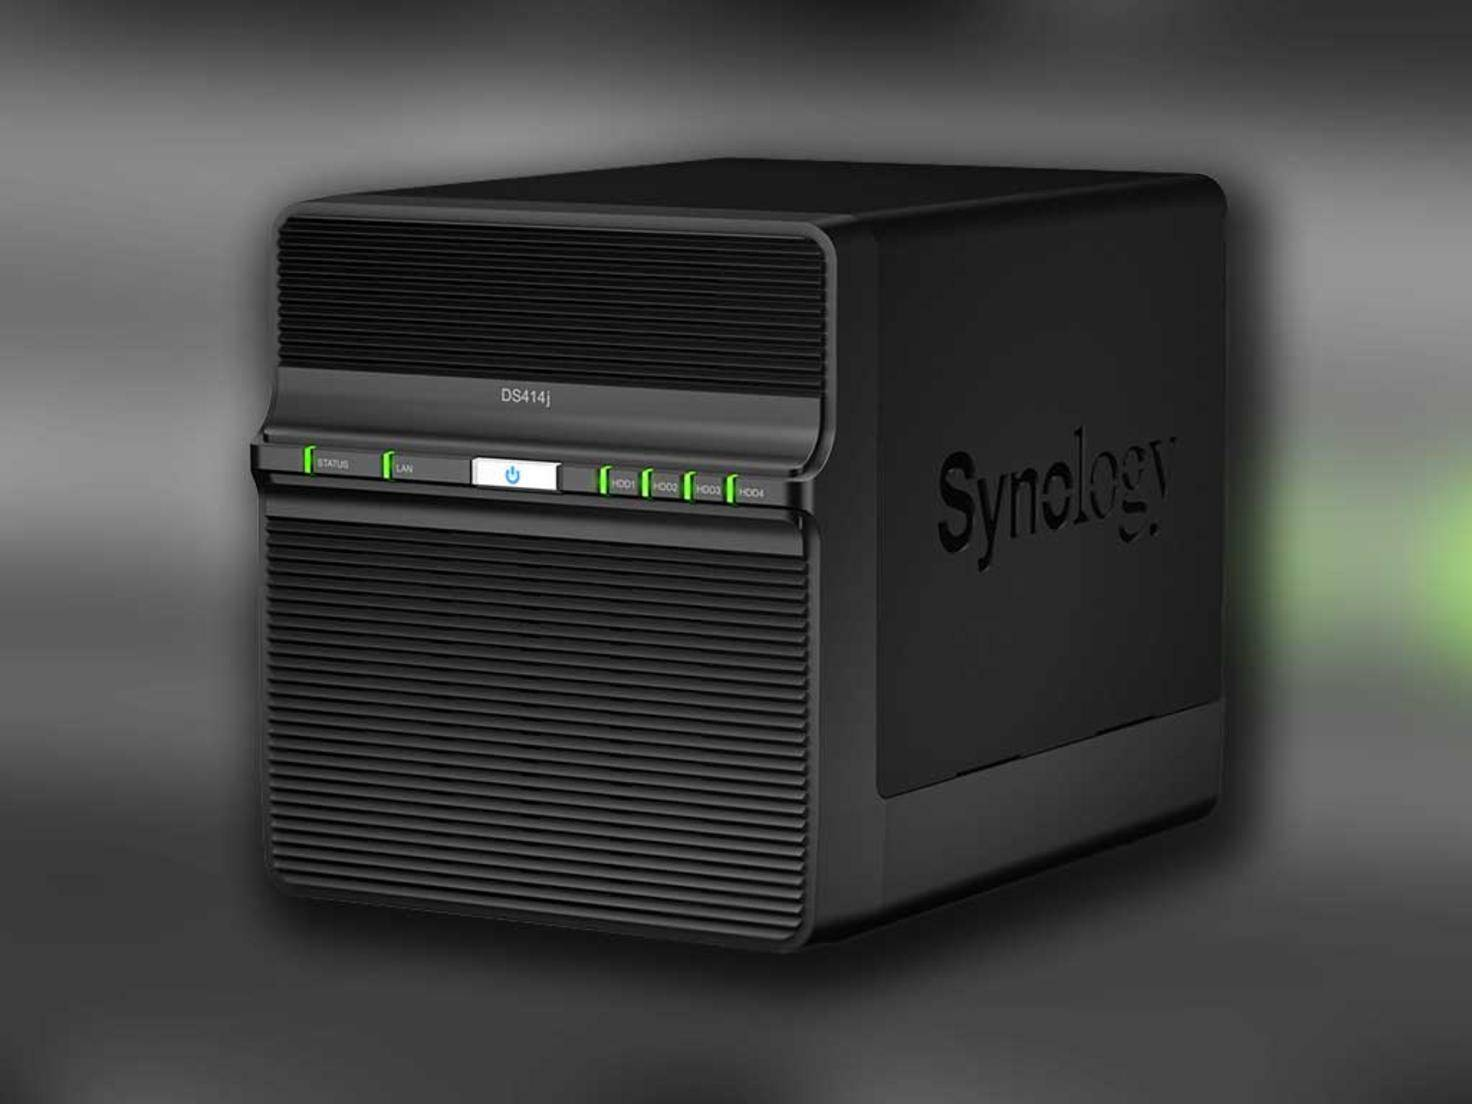 Private Cloud Synology DS414j